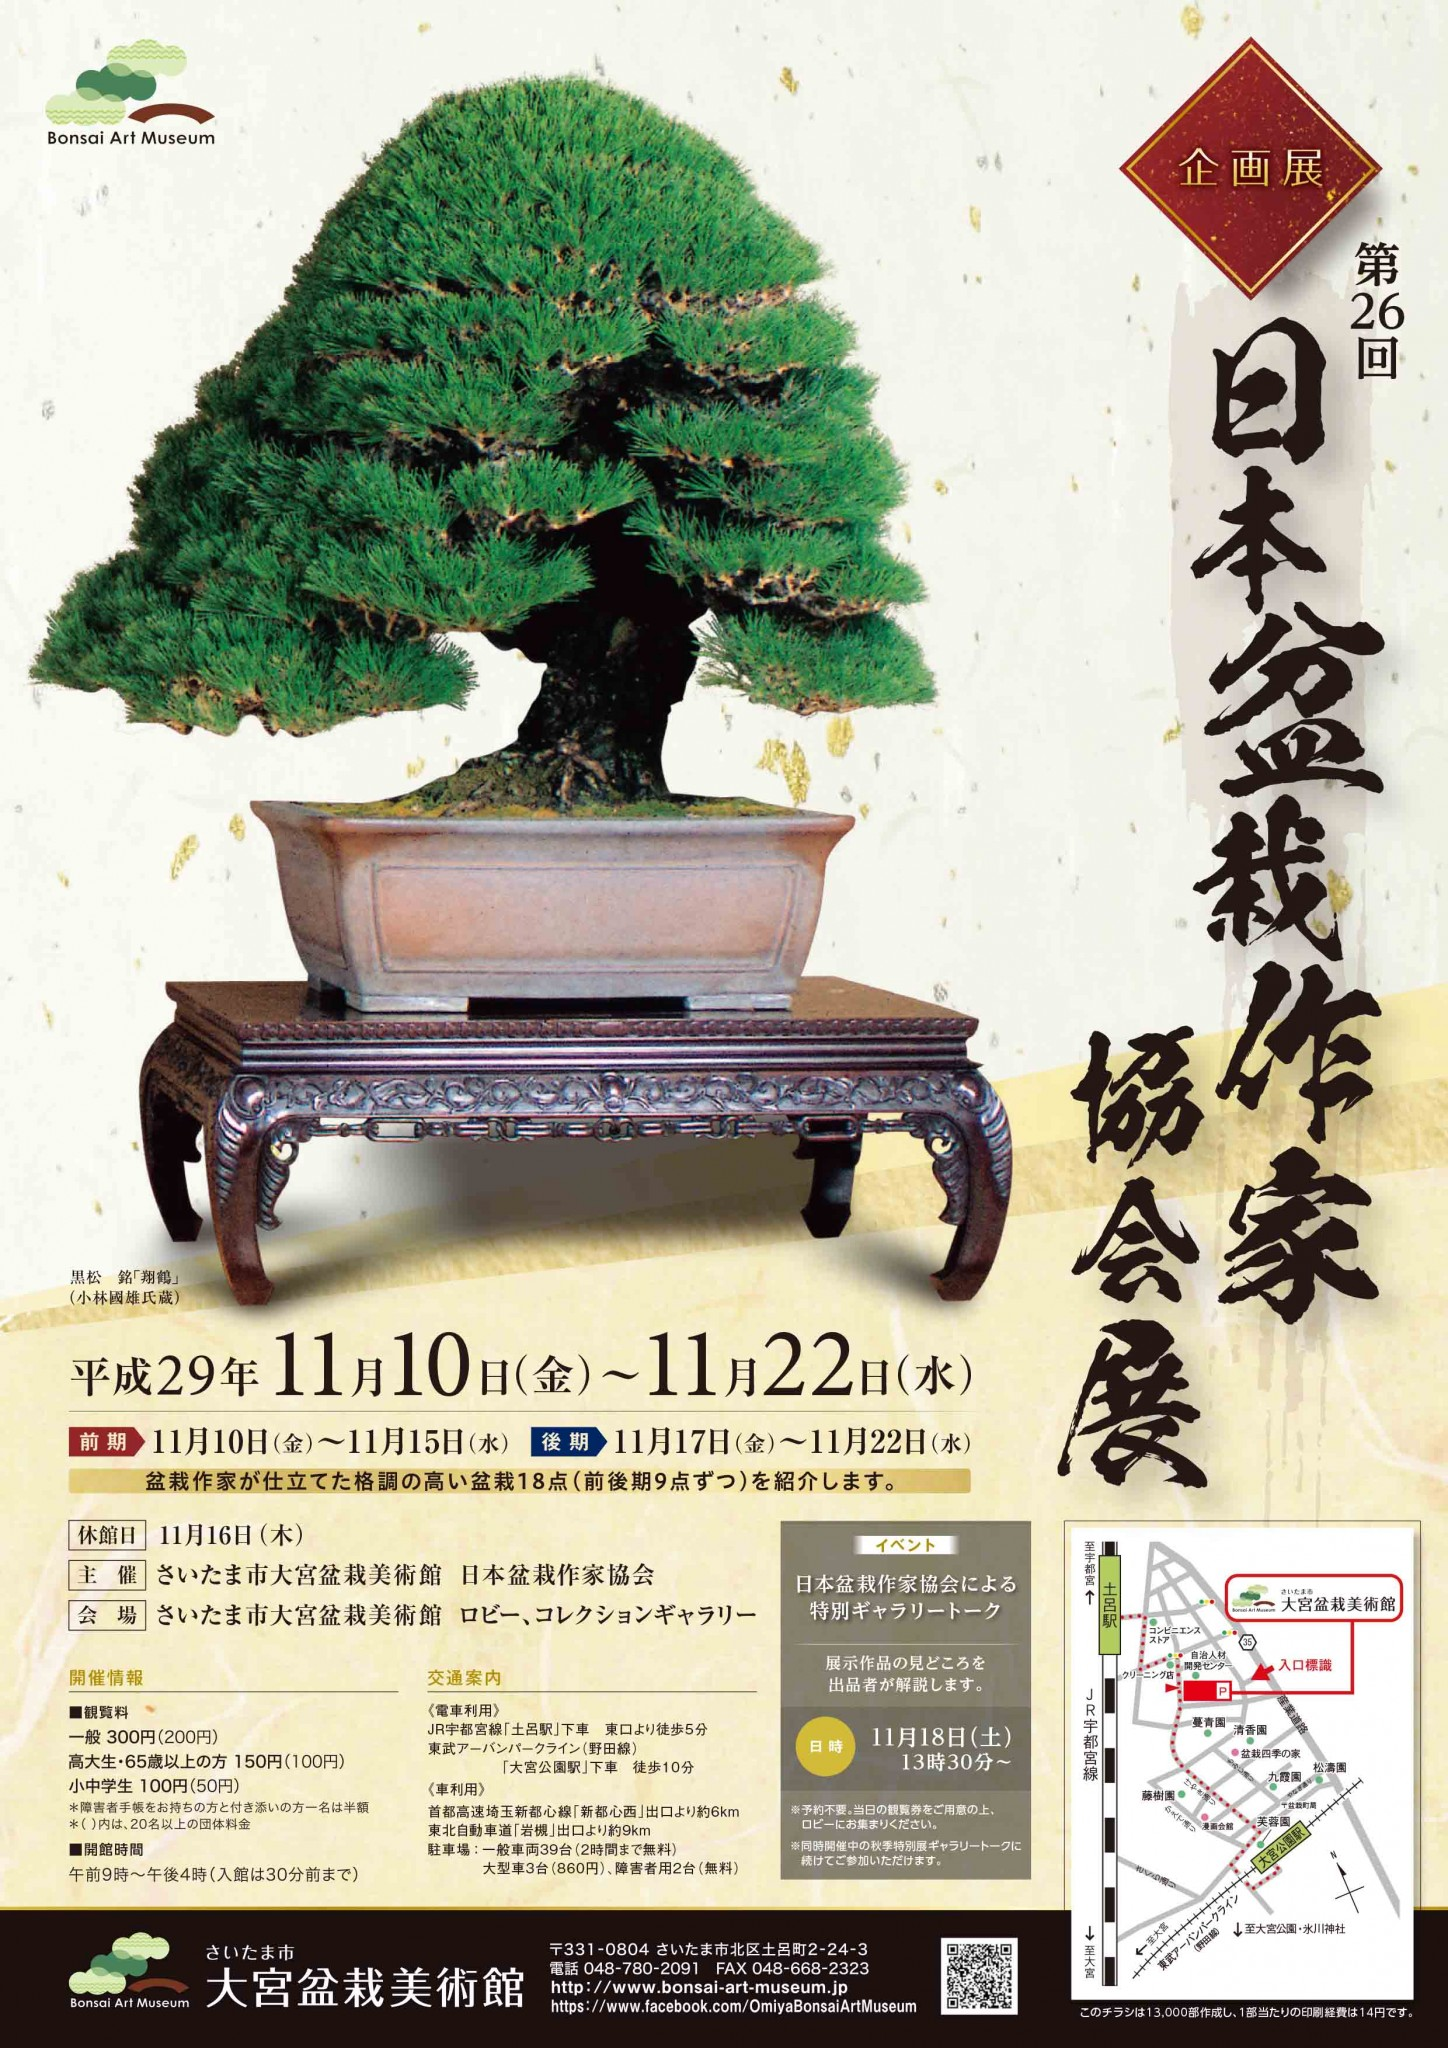 The 26th Nippon Bonsai Sakka Kyokai Exhibition